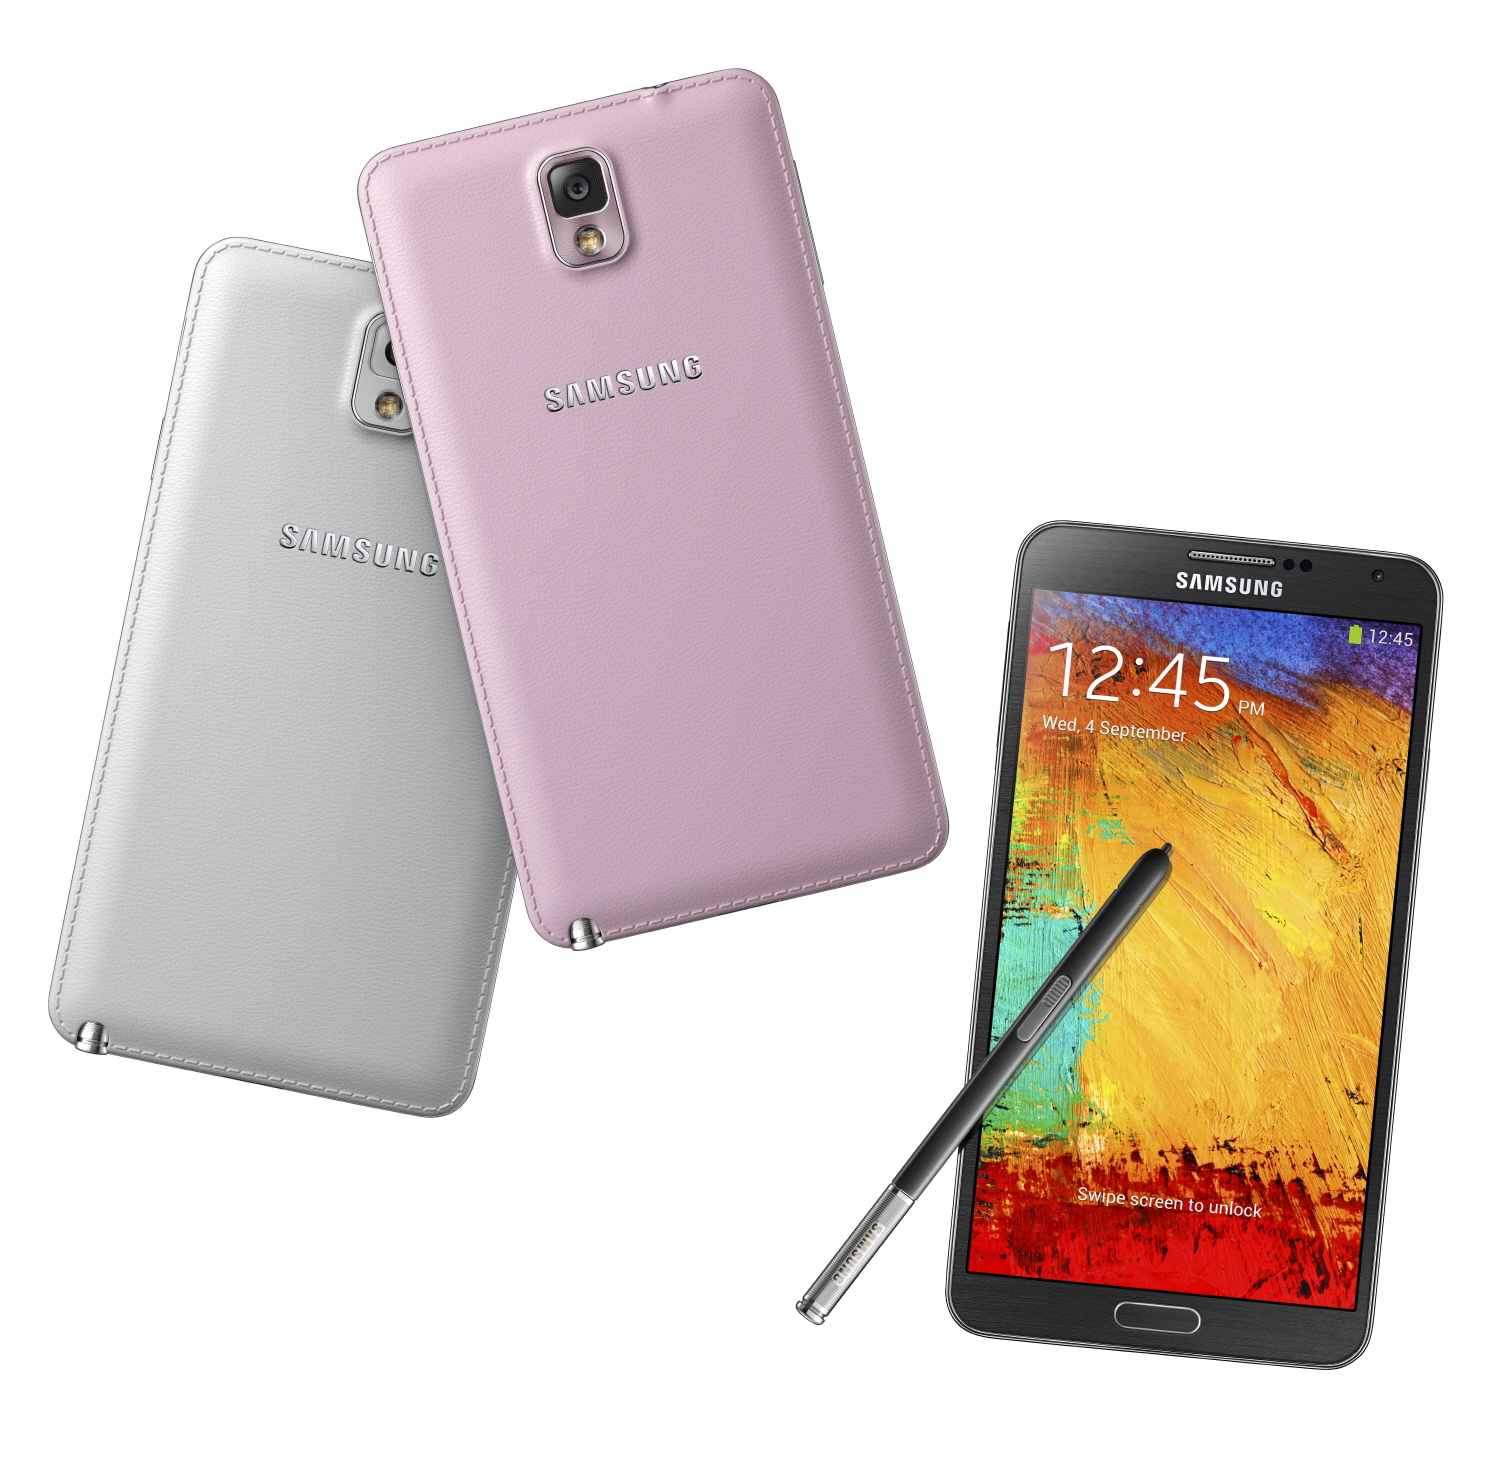 Samsung Galaxy Note 3 - set